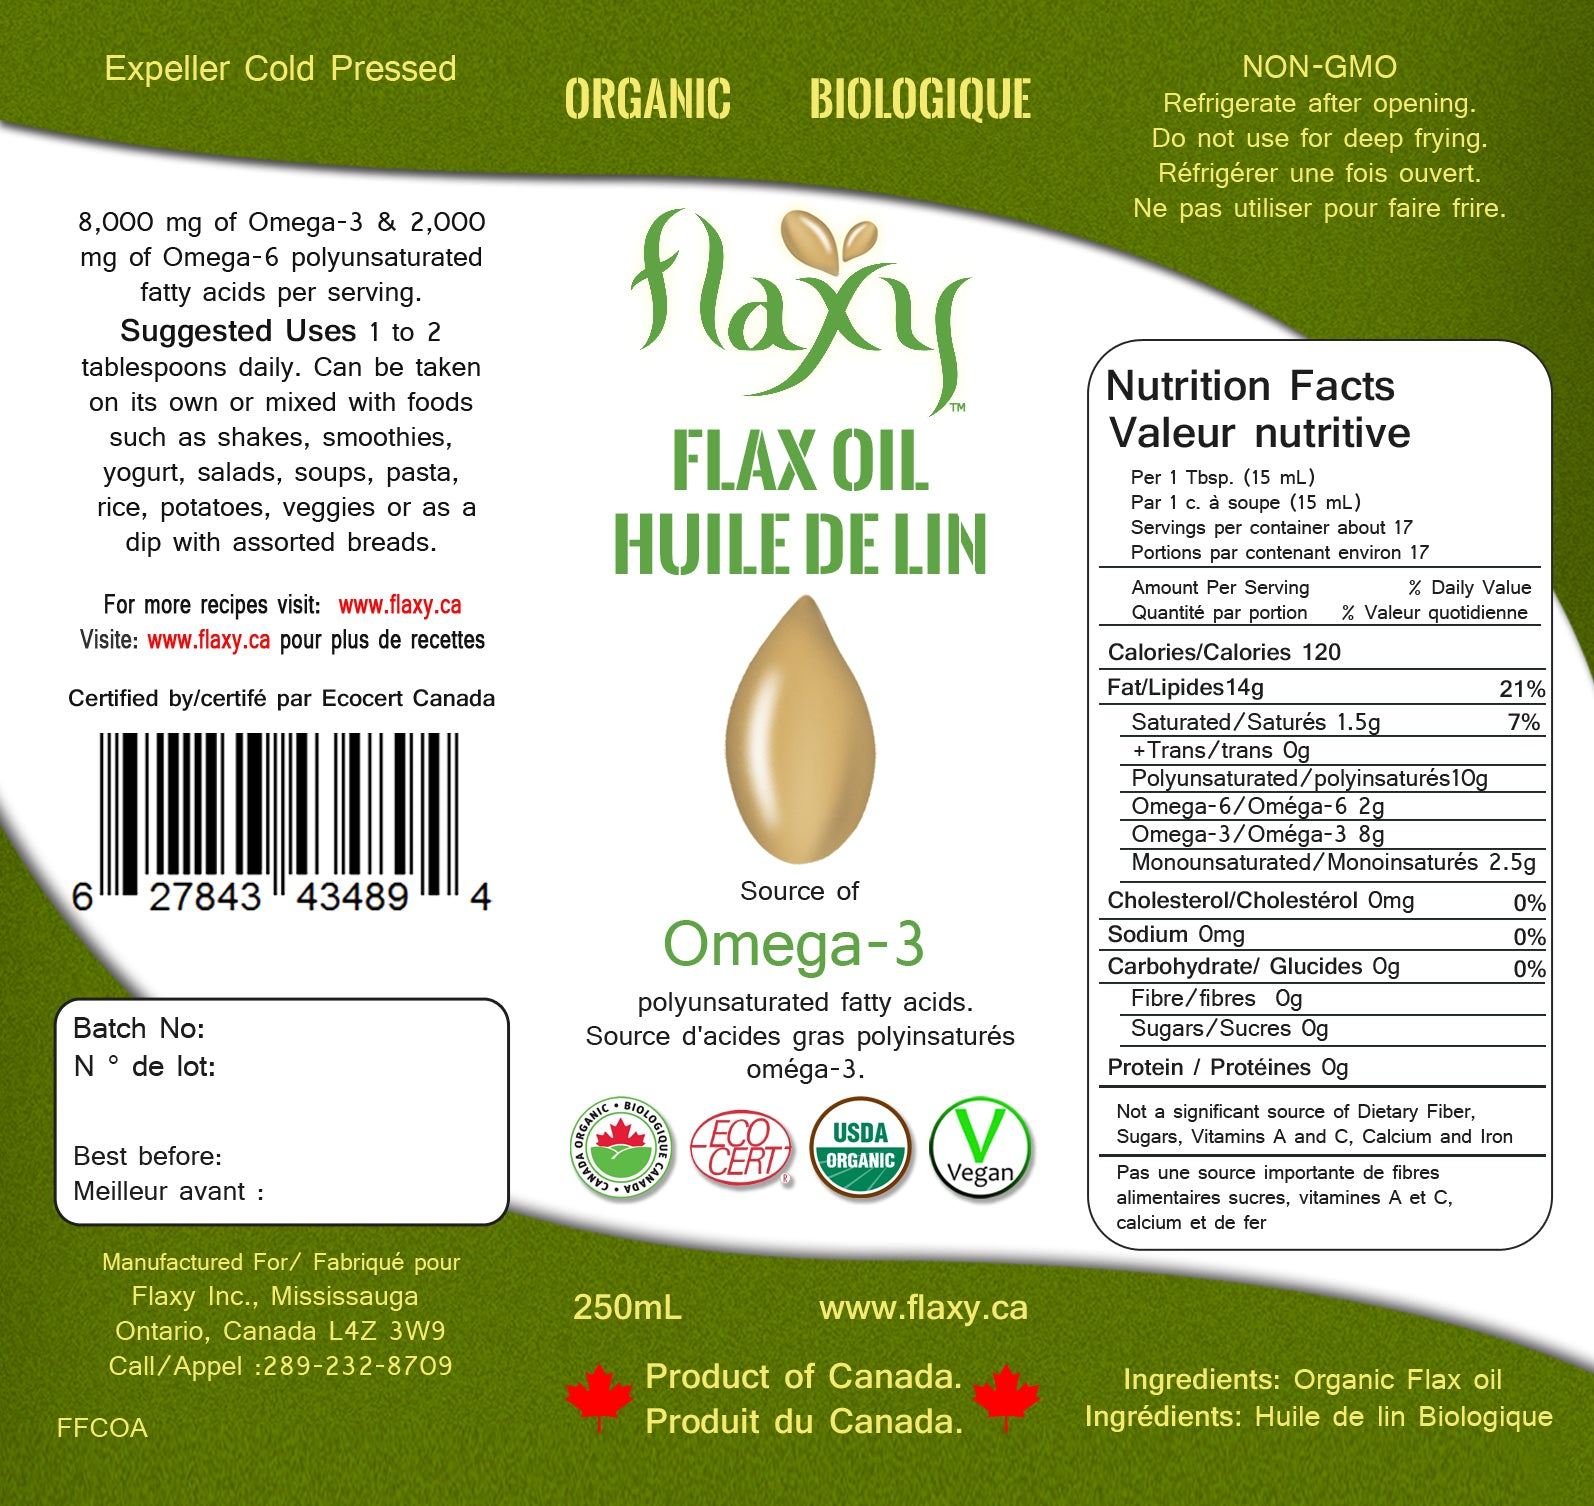 Flaxy - Flax Oil Organic